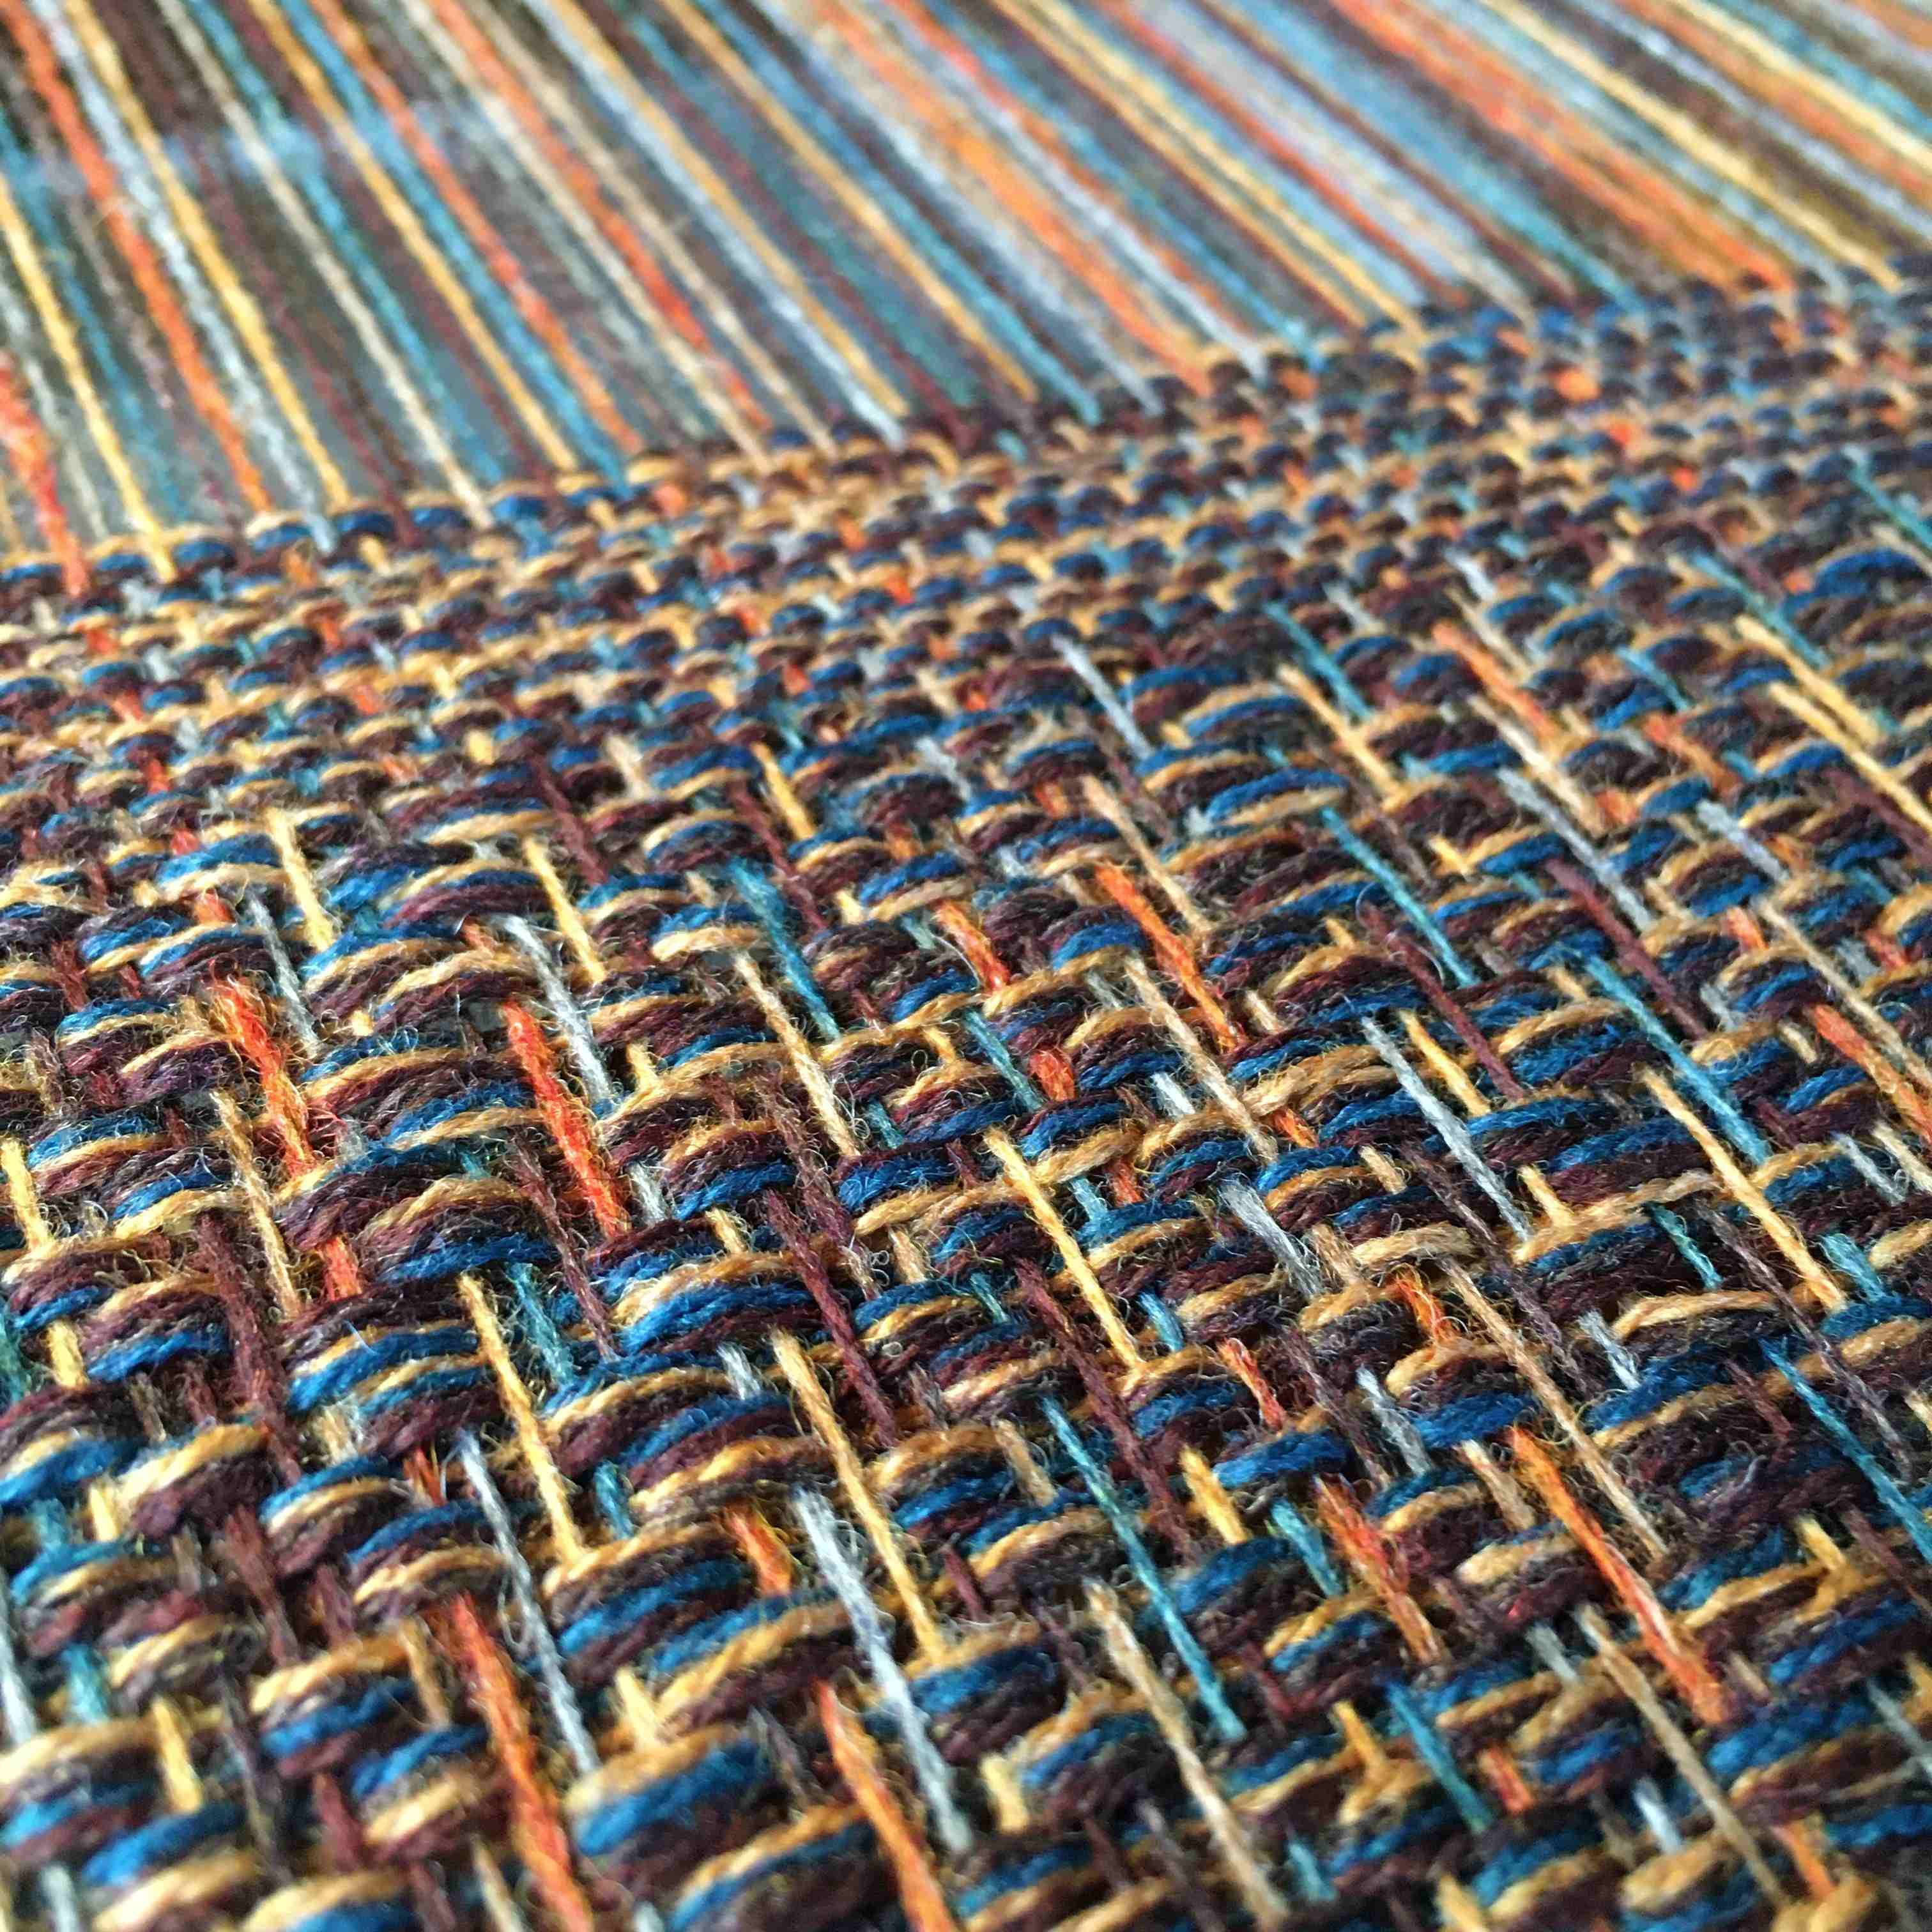 On the loom March